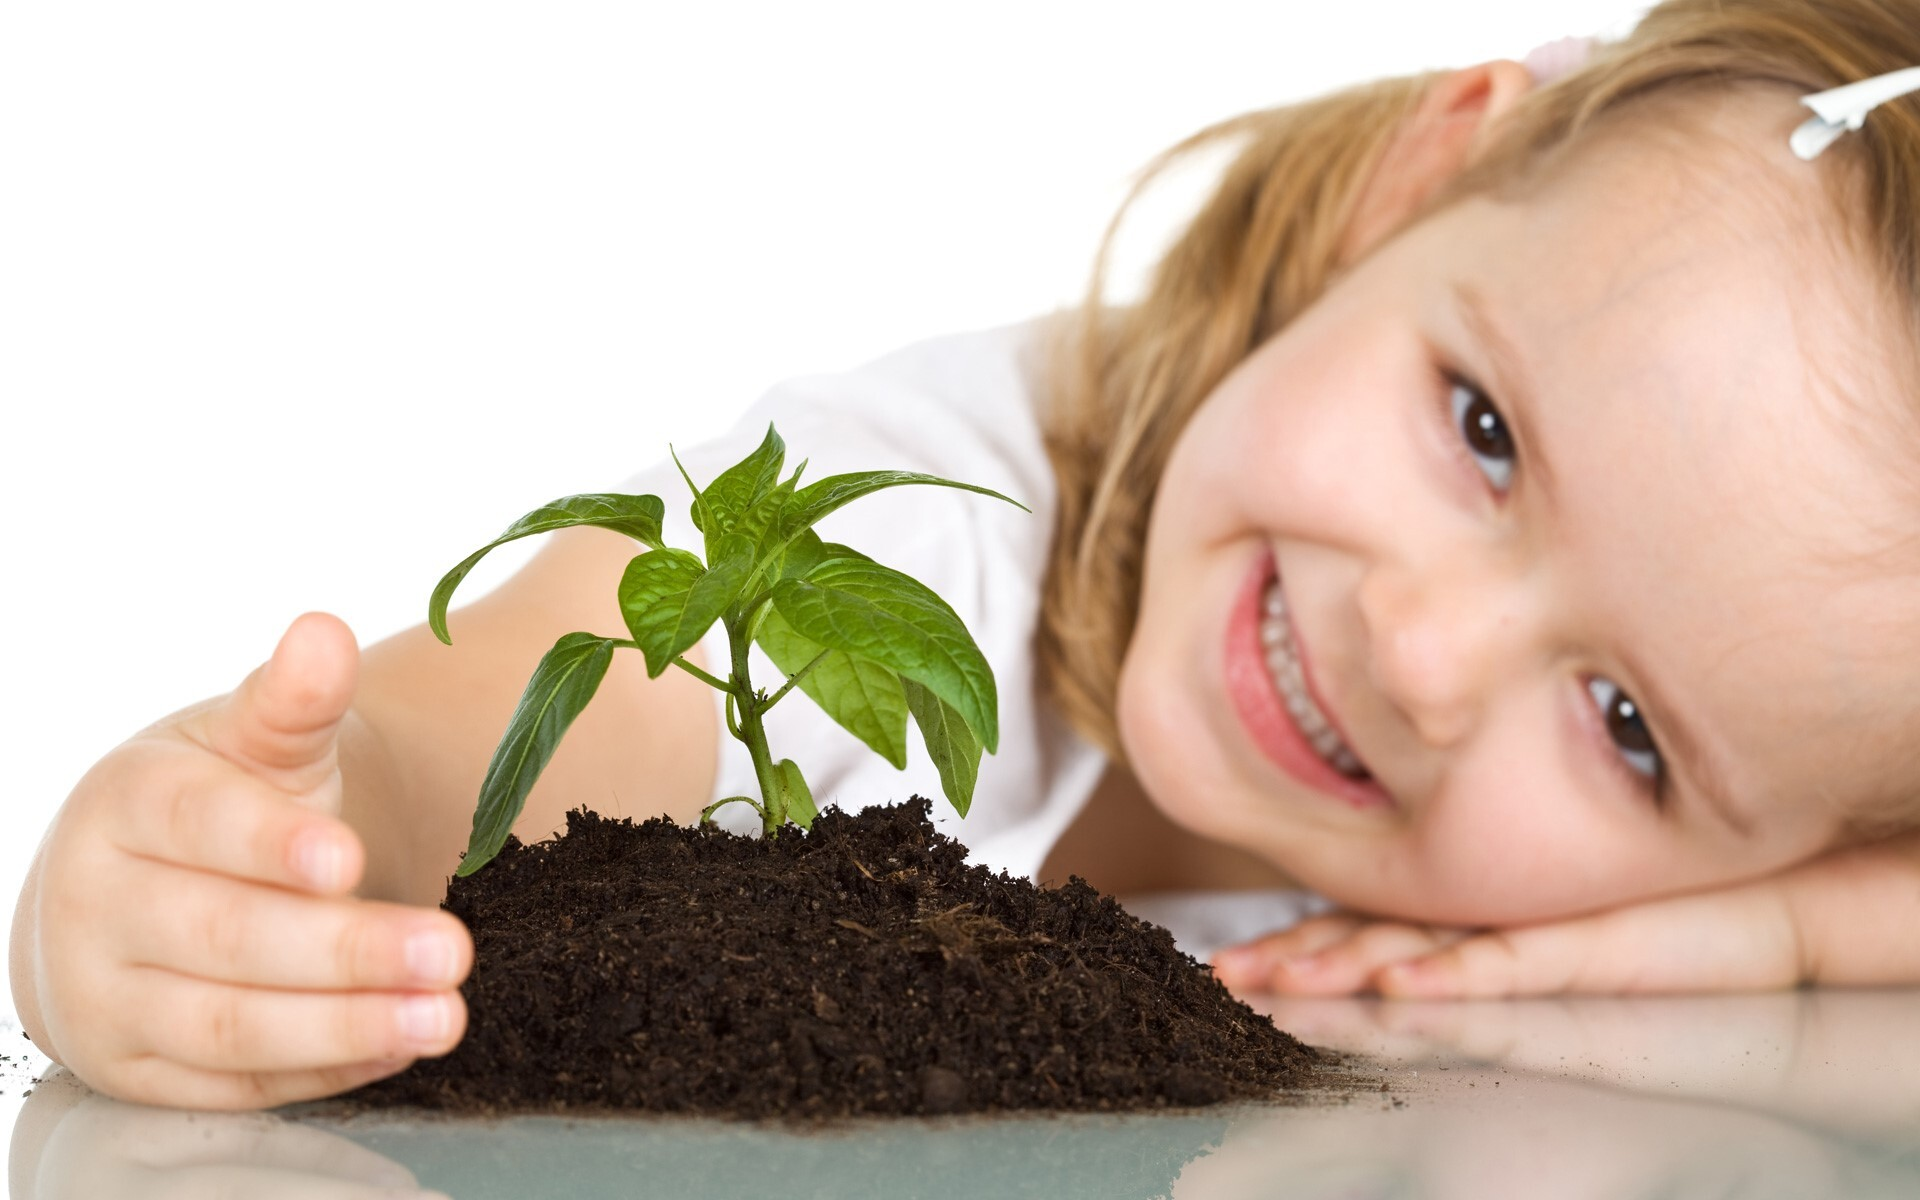 cute baby wallpapers previous wallpaper beautiful child girl with plant wallpaper free download - Children Images Free Download